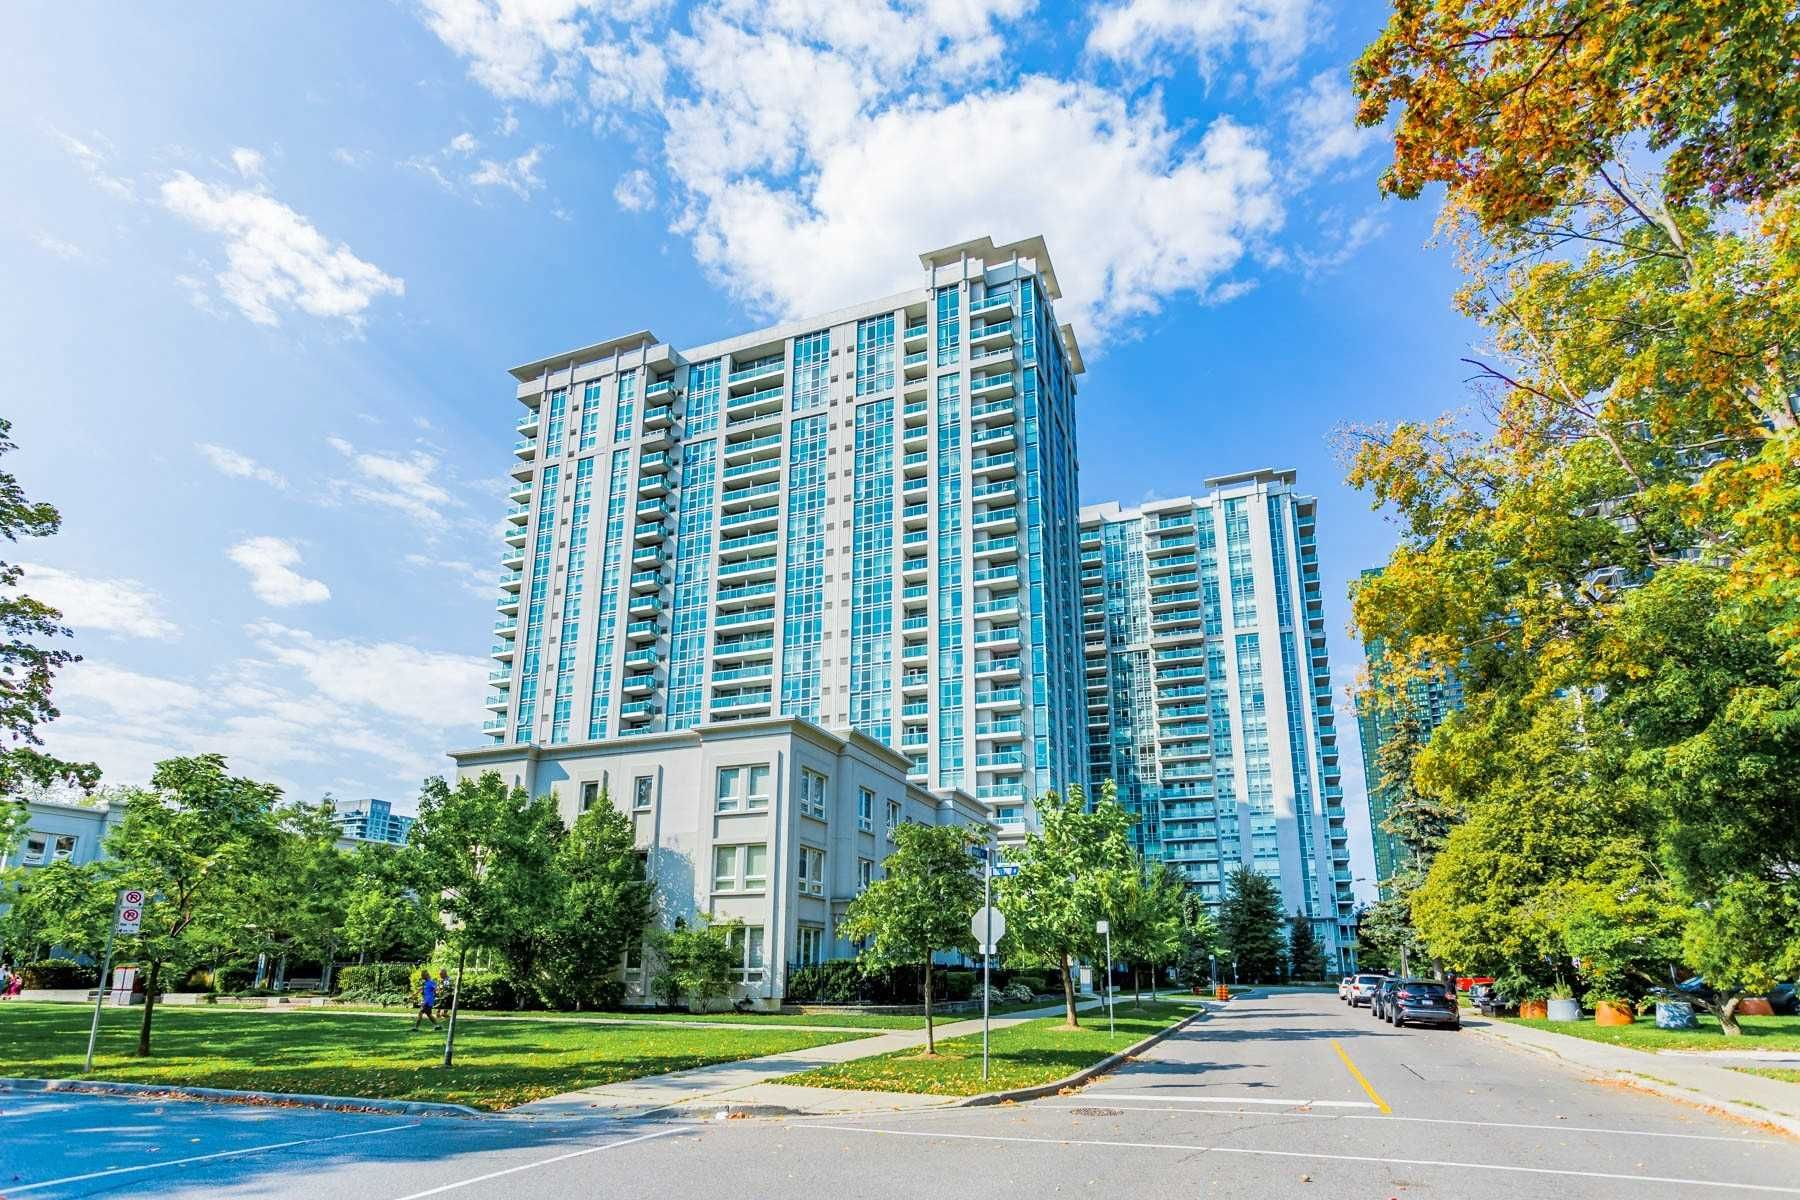 17 Anndale Dr, unit 1908 for sale in Willowdale - image #1